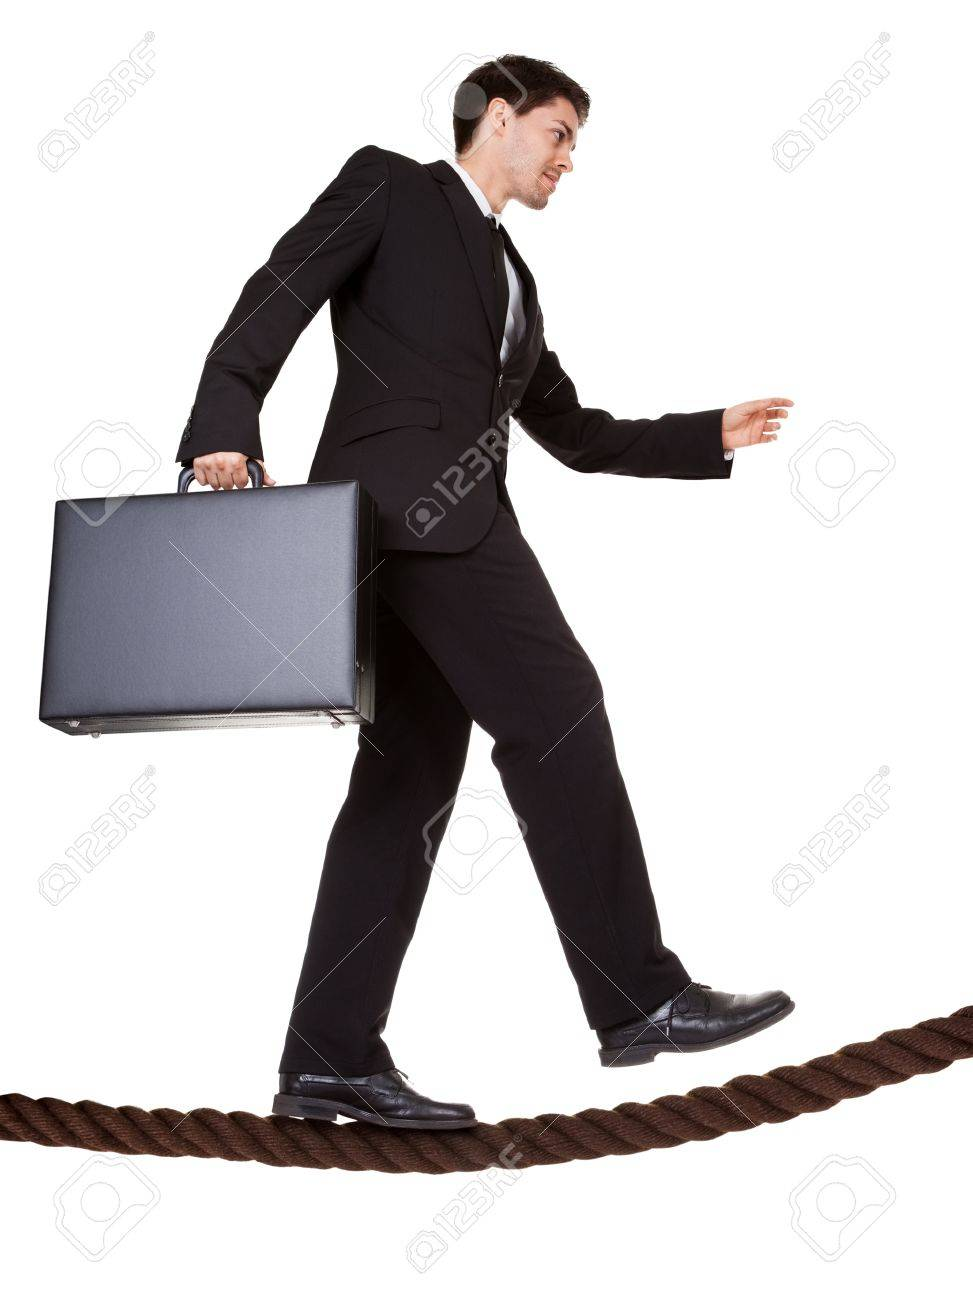 Conceptual image of a businessman carrying a briefcase balancing precariously as he walks a tightrope isolated on white Stock Photo - 17384634